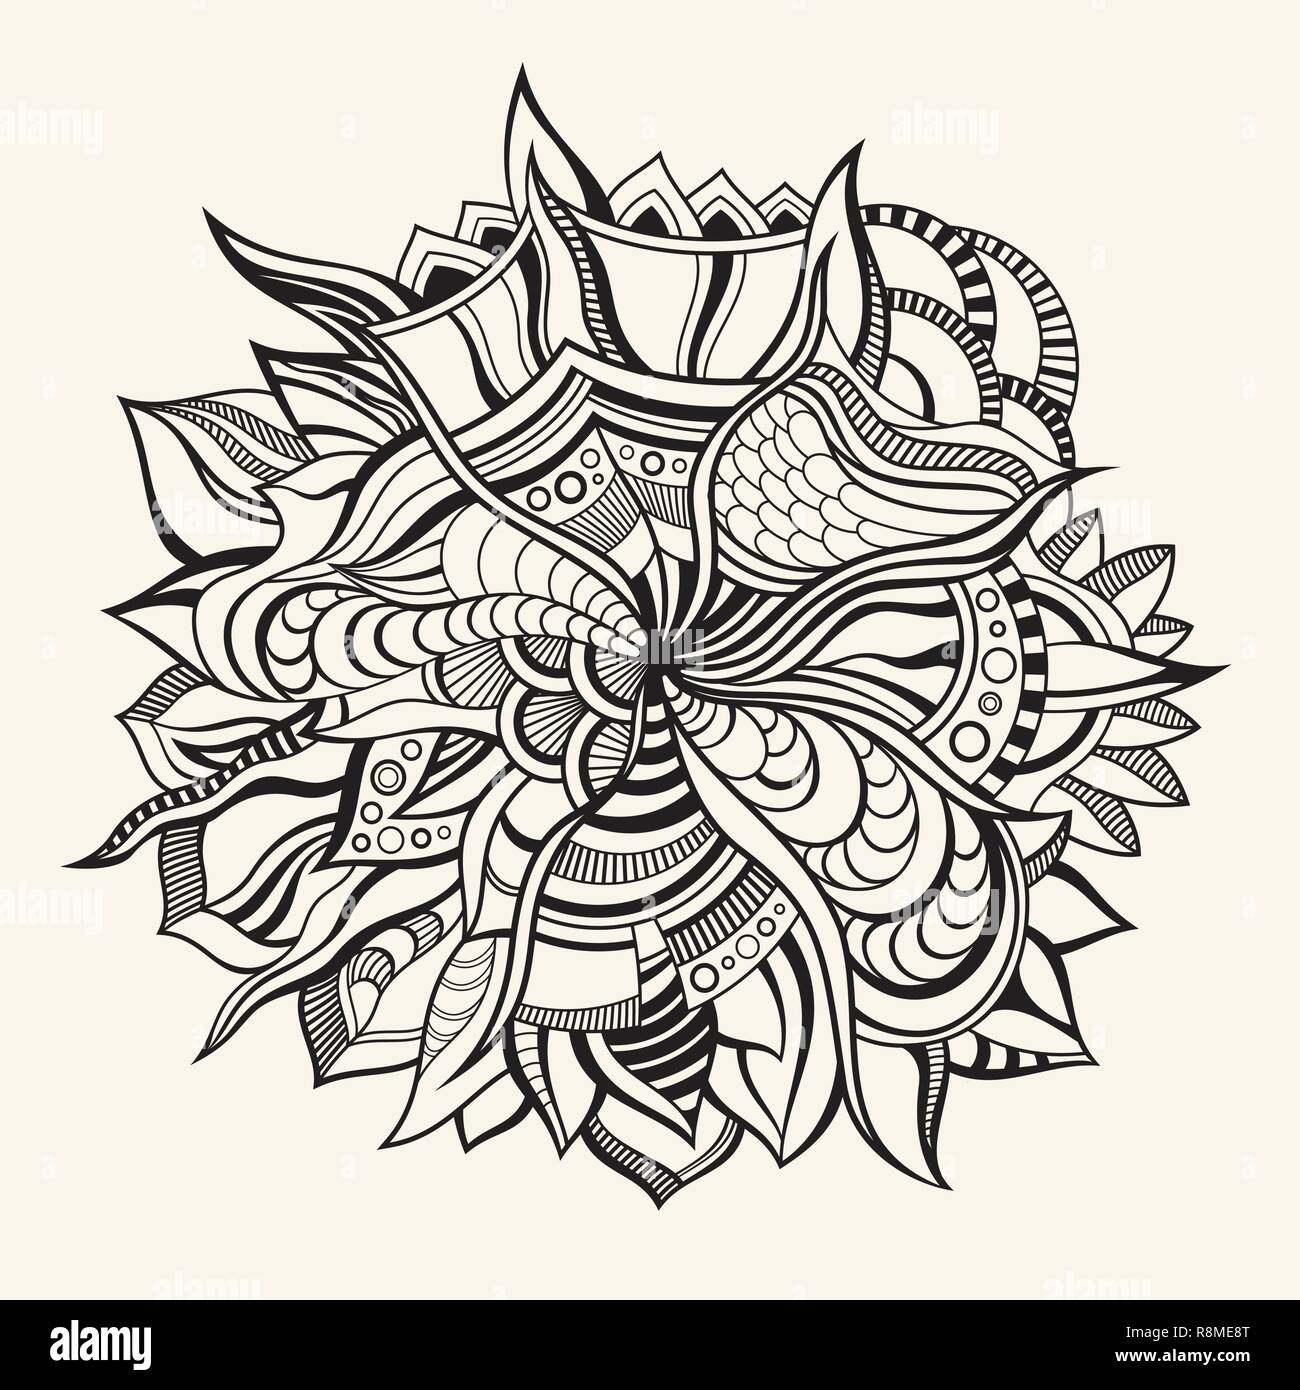 Unduh 77 Background Line Art Vector HD Terbaik